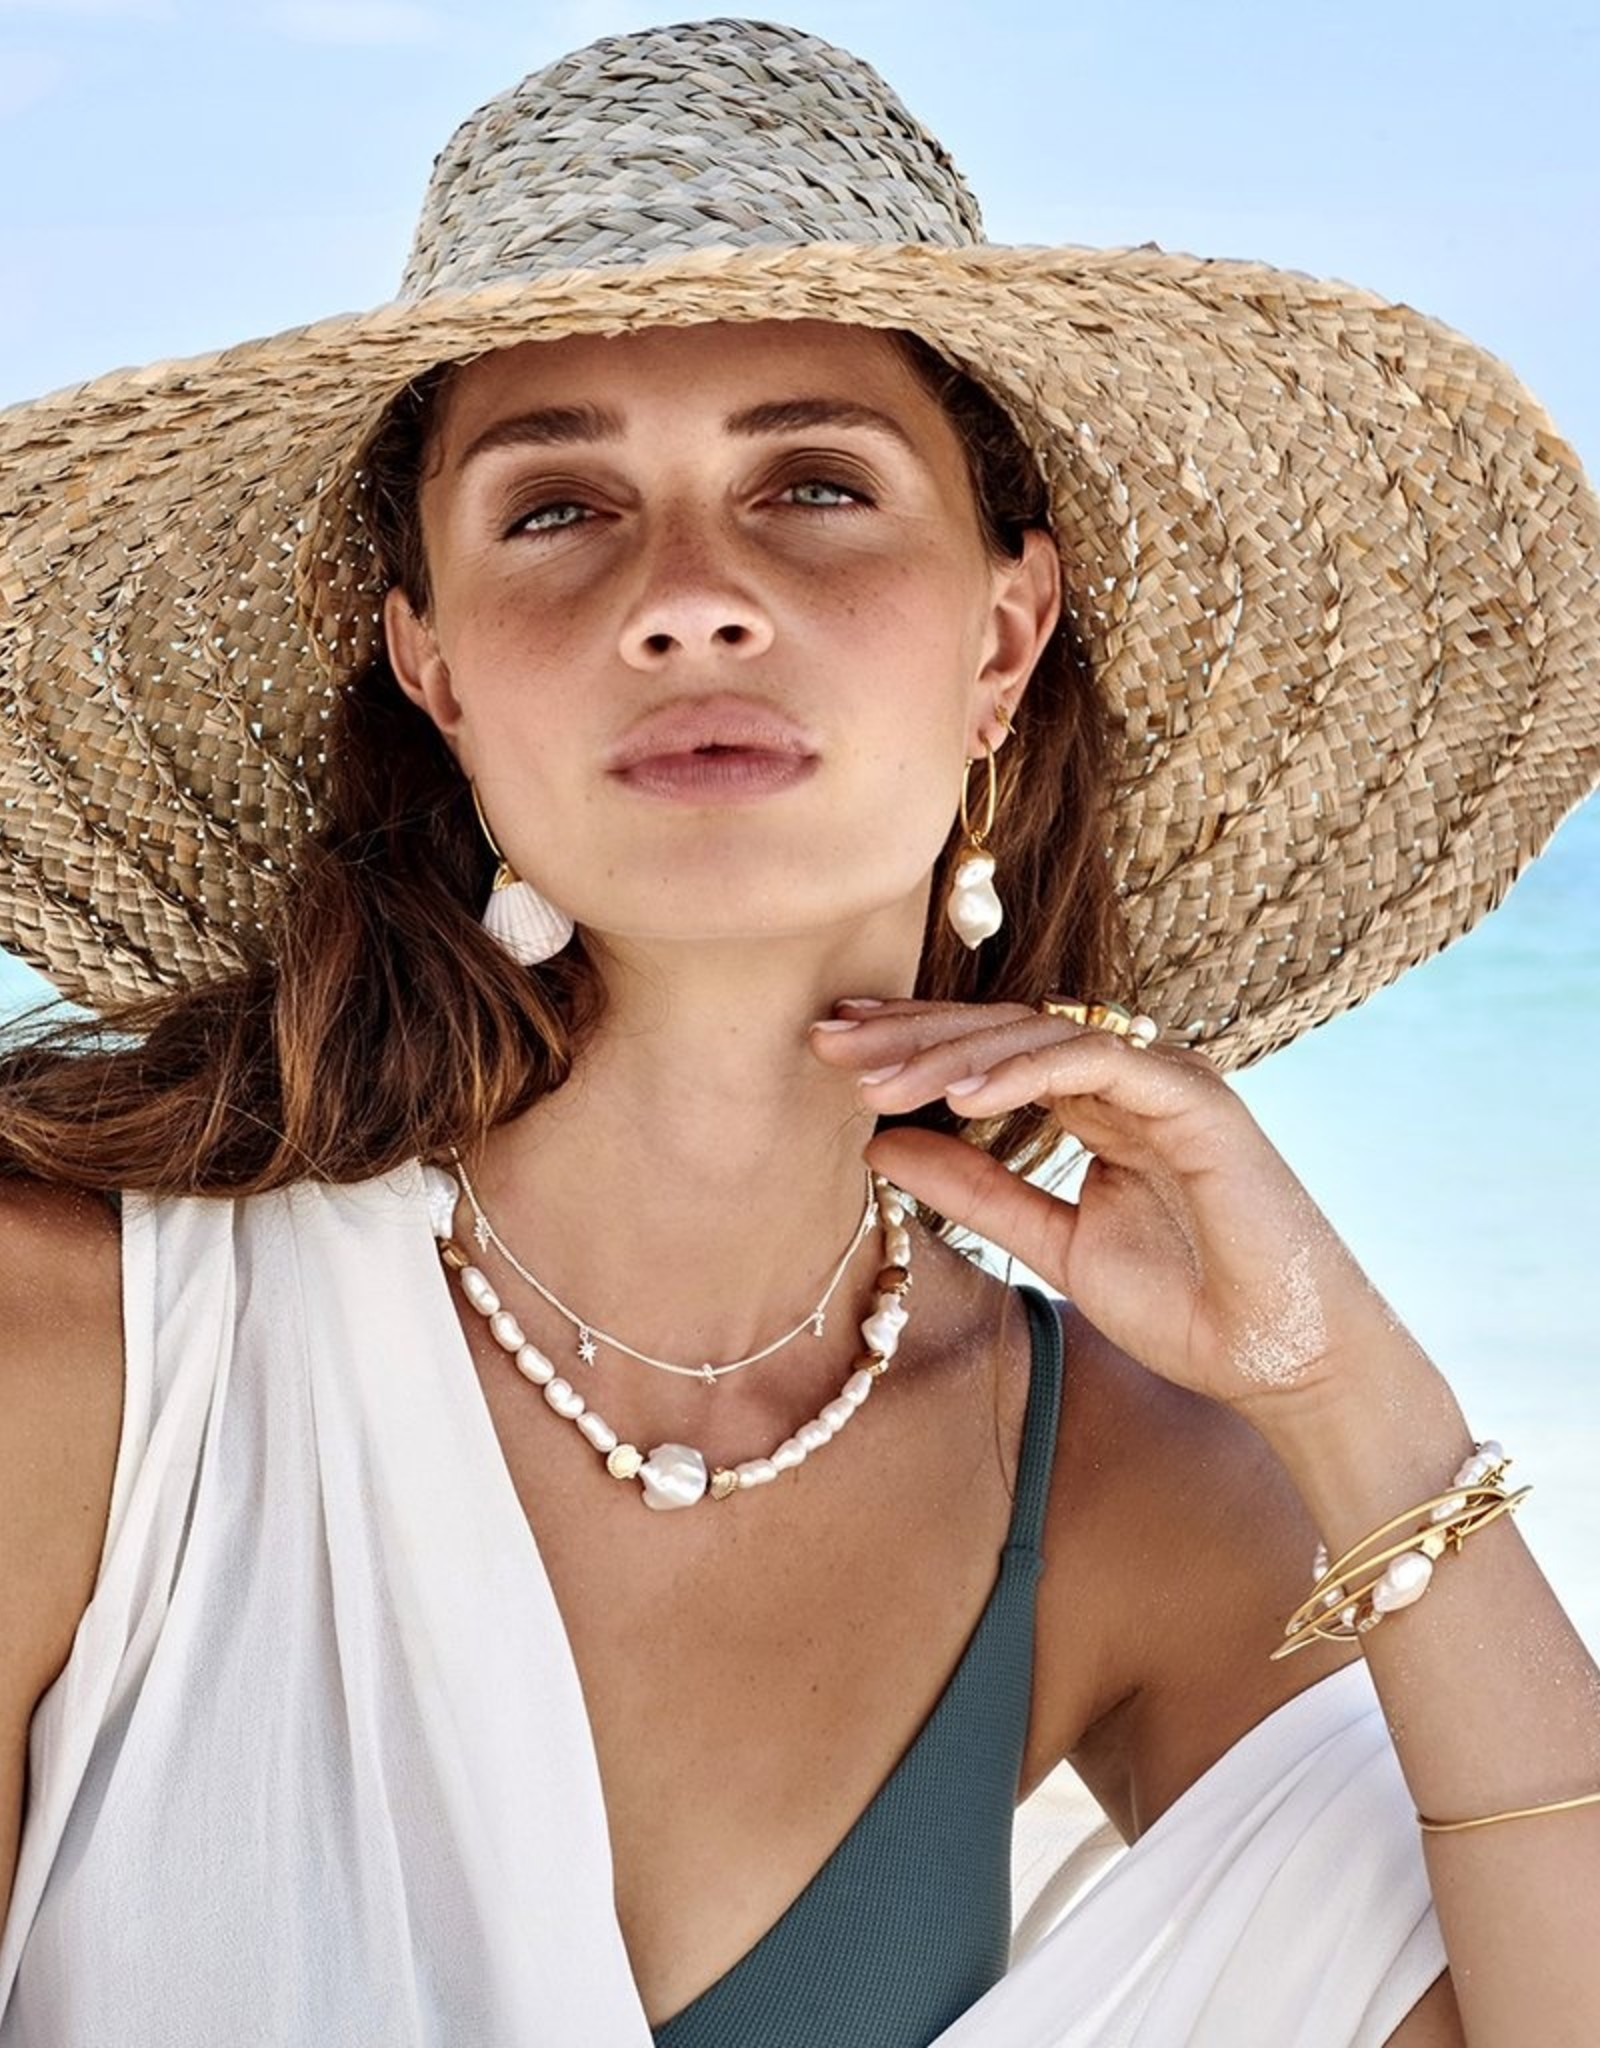 FAIRLEY PEARL SEASHELL NECKLACE